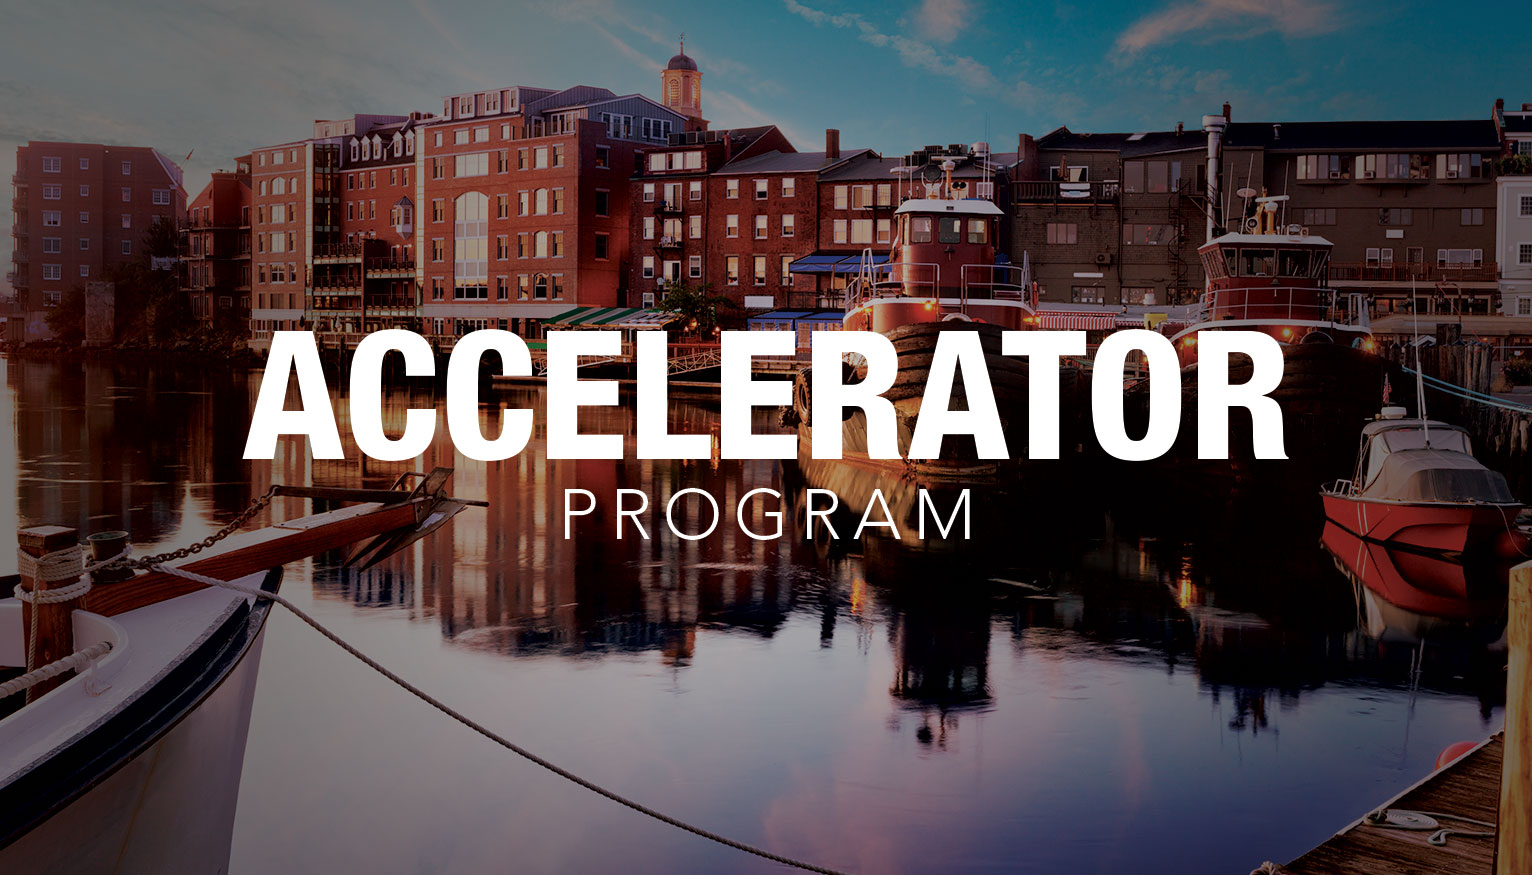 ACG Boston ACCELERATOR Program